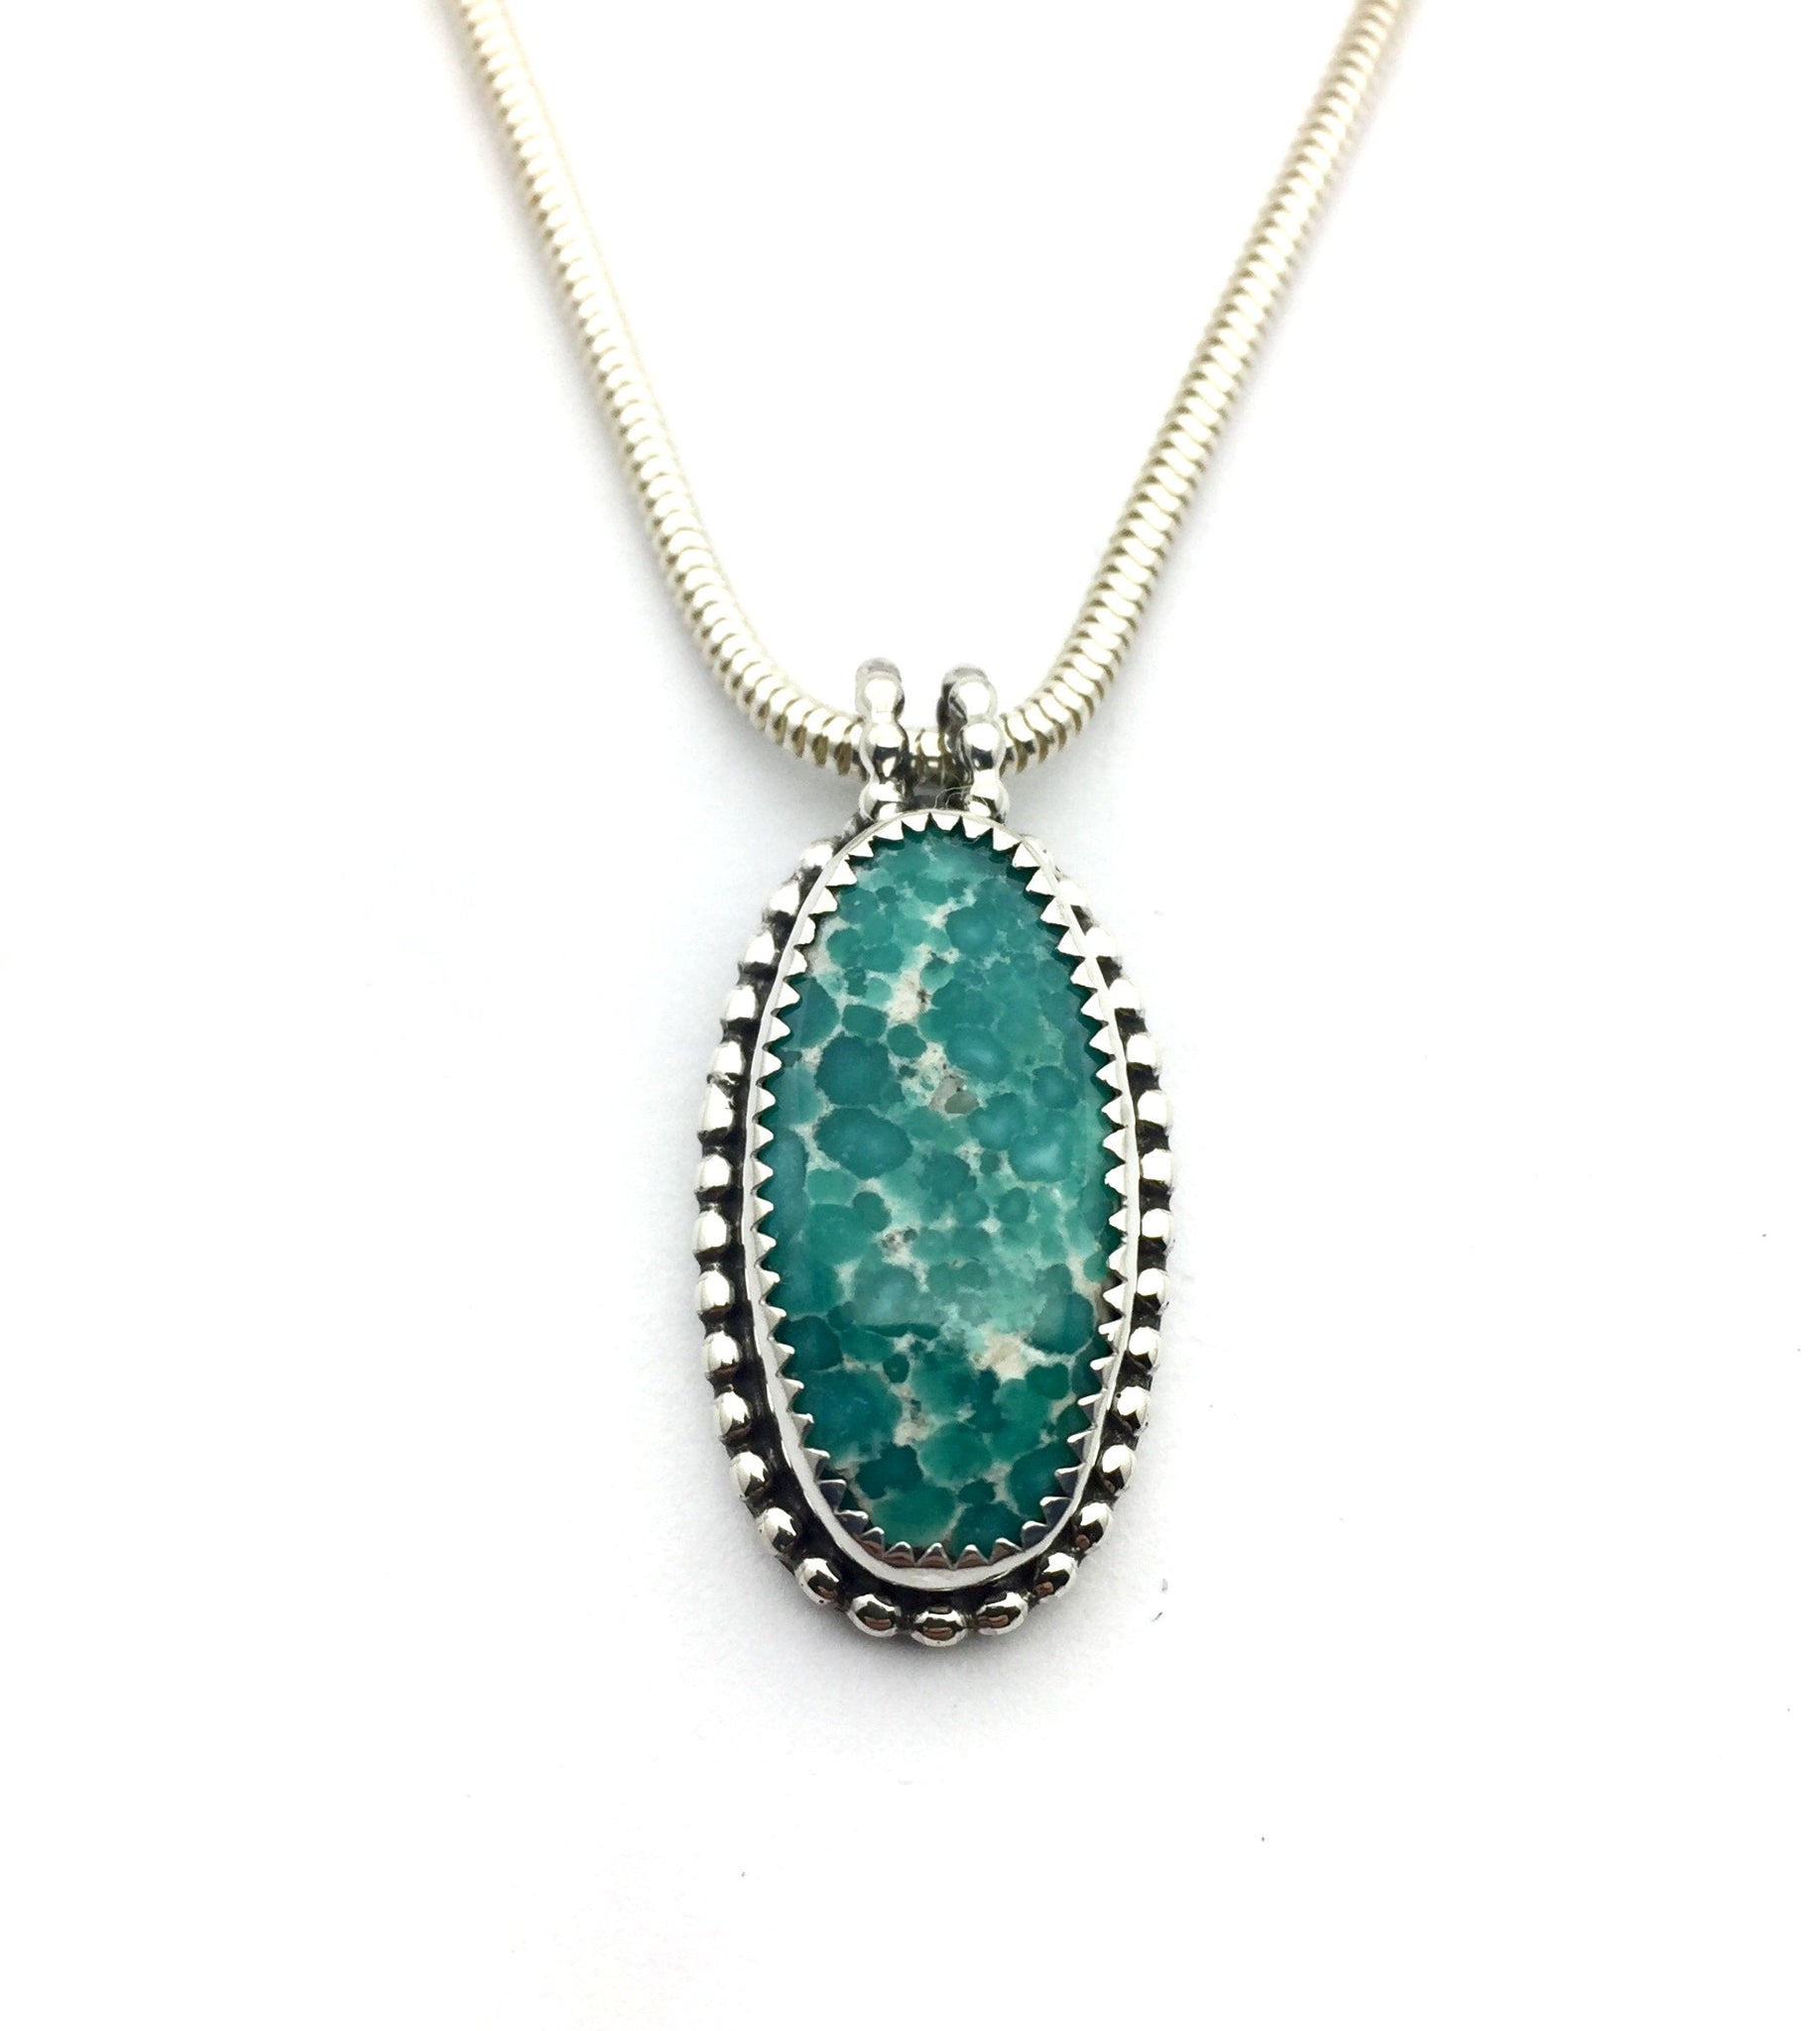 Turquoise Pendants in Sterling Silver, Royston and Whitewater Necklaces